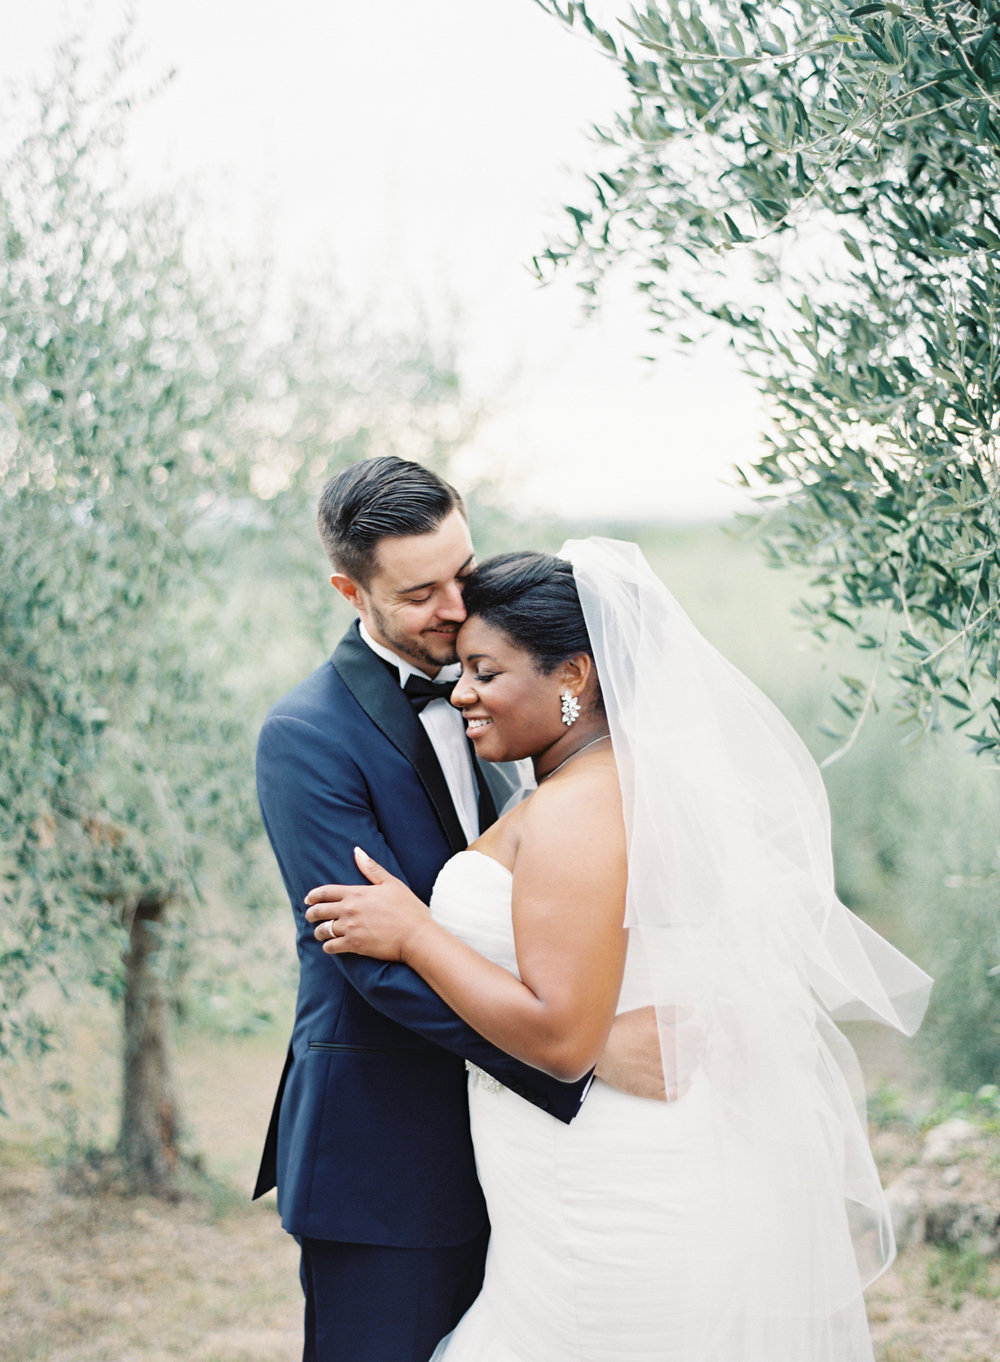 Vicki Grafton Photography | Fine Art Film Tuscan Wedding Photographer |  Vicki Grafton Photography | BORGO STOMENNANO